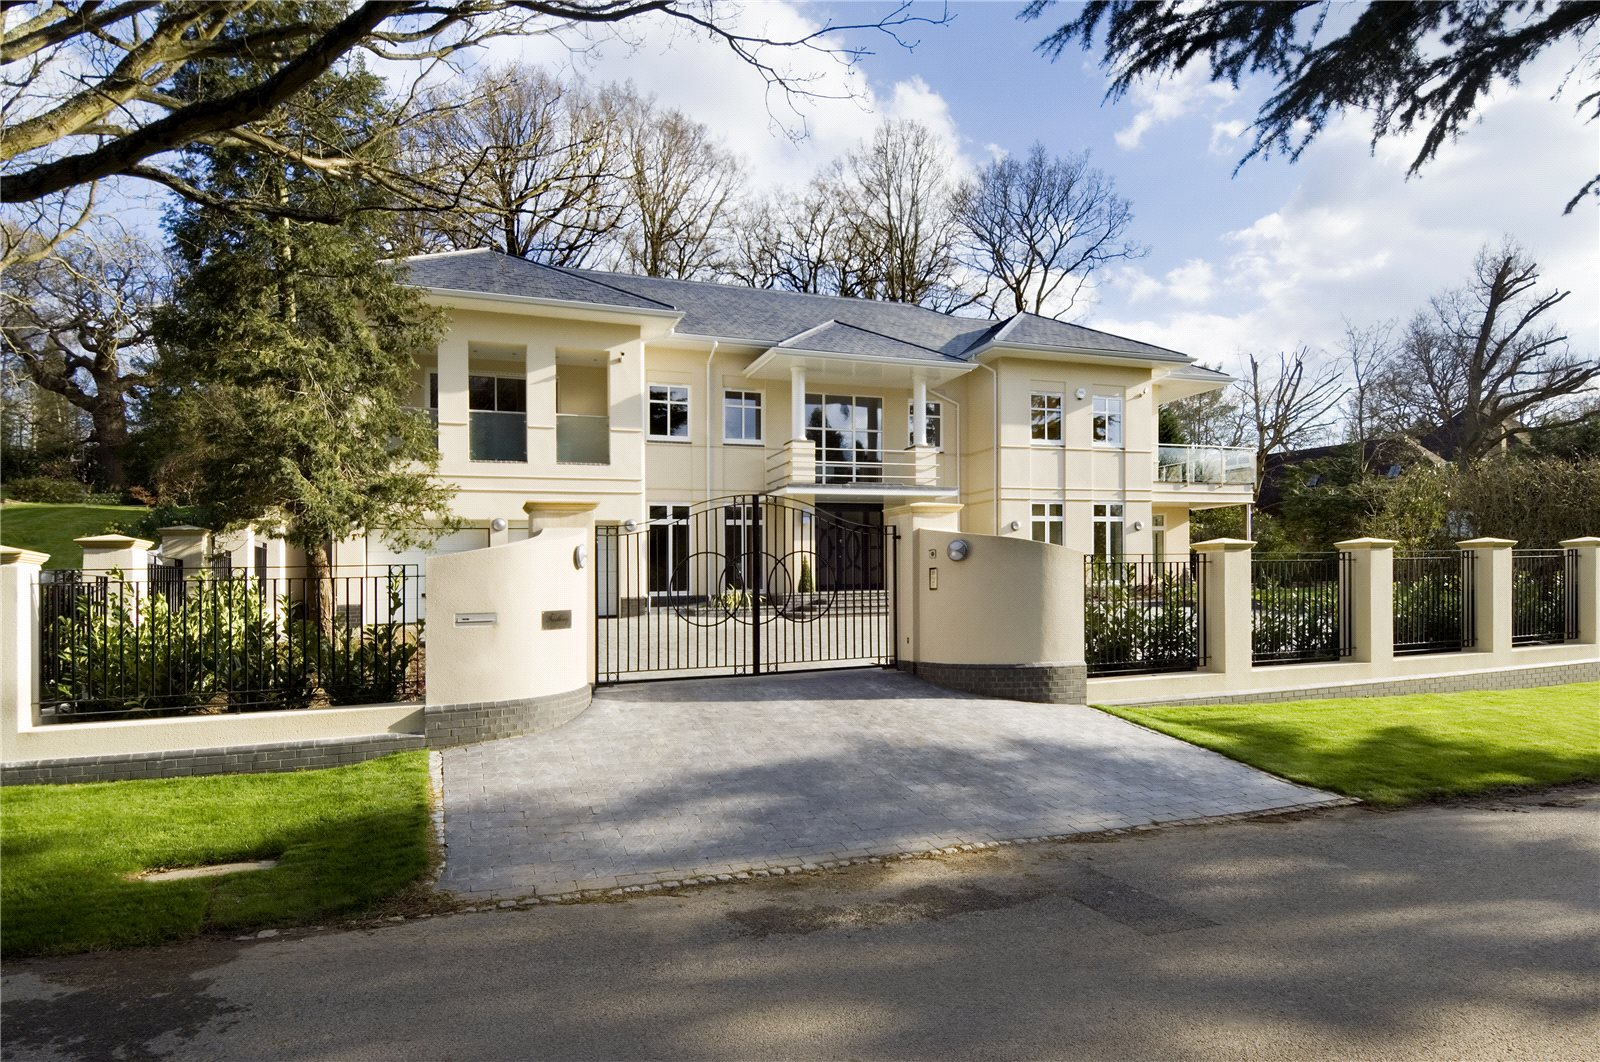 Частный дом для того Продажа на Camp Road, Gerrards Cross, Buckinghamshire, SL9 Gerrards Cross, Англия